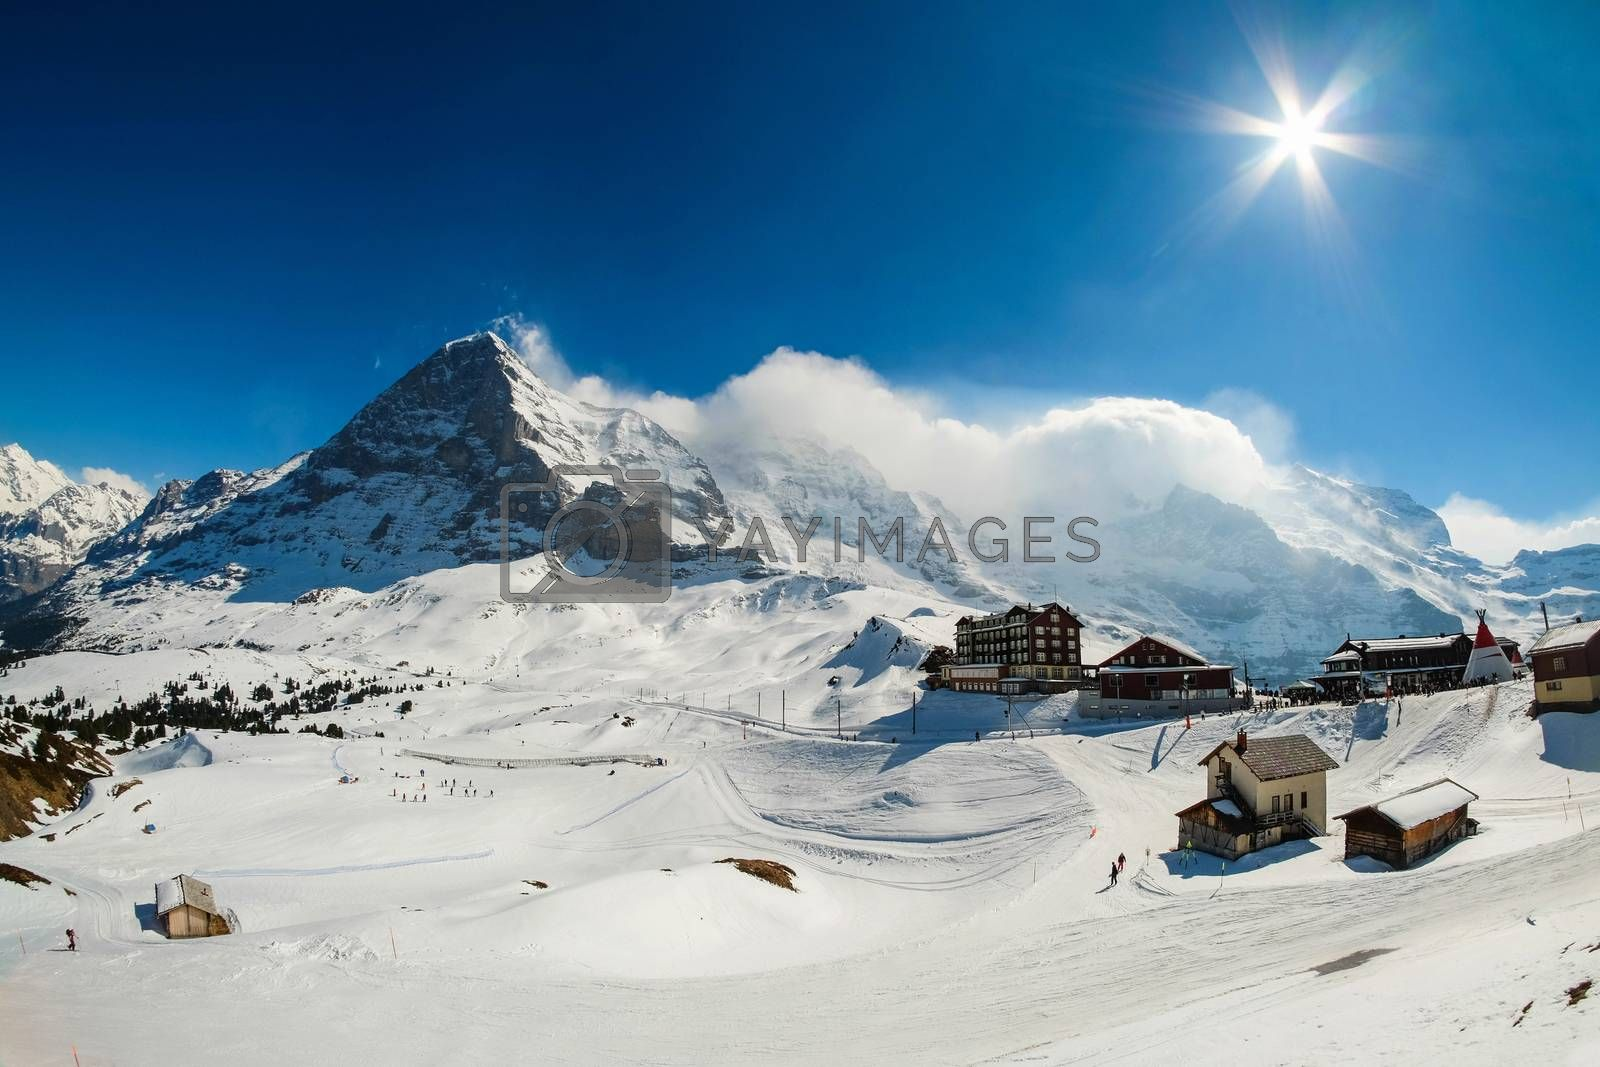 Kleine Scheidegg station, along the railway from Interlaken to J by Surasak